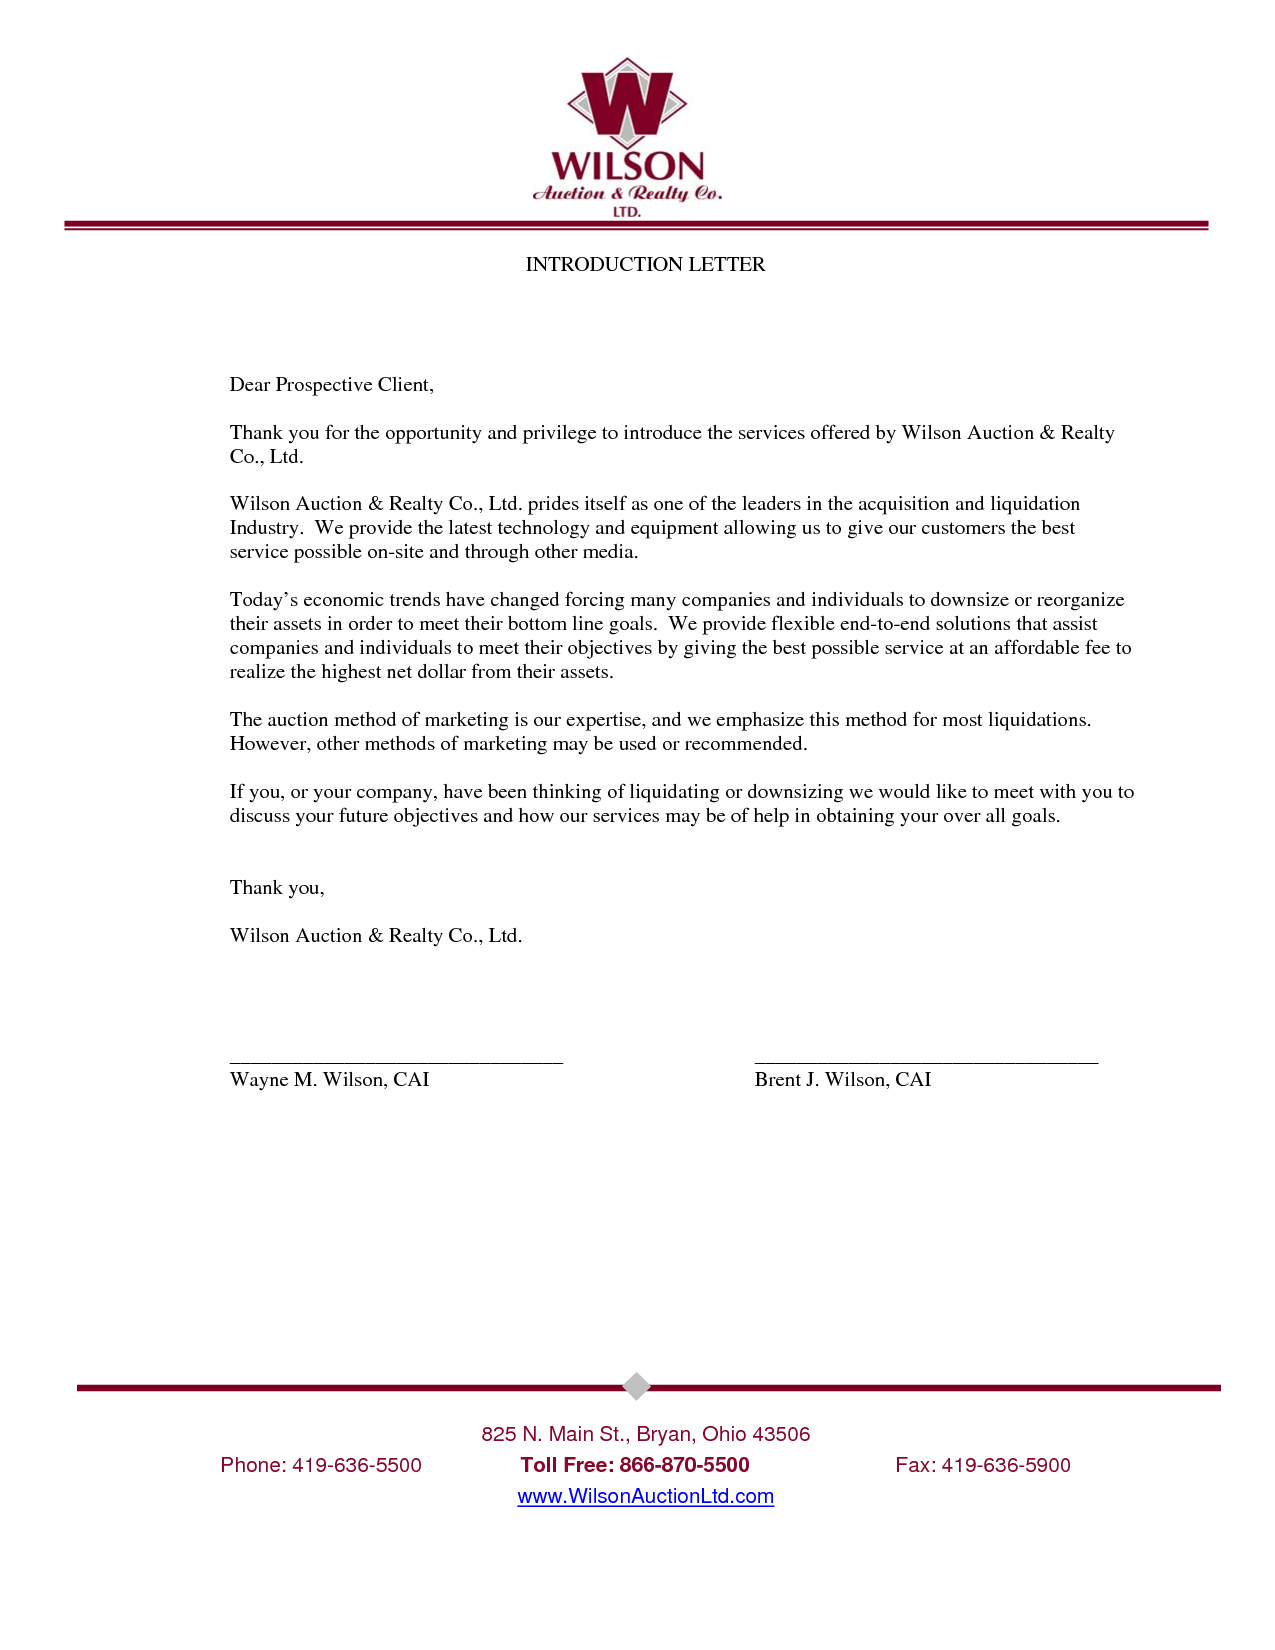 New Business Introductory Letters Scrumps